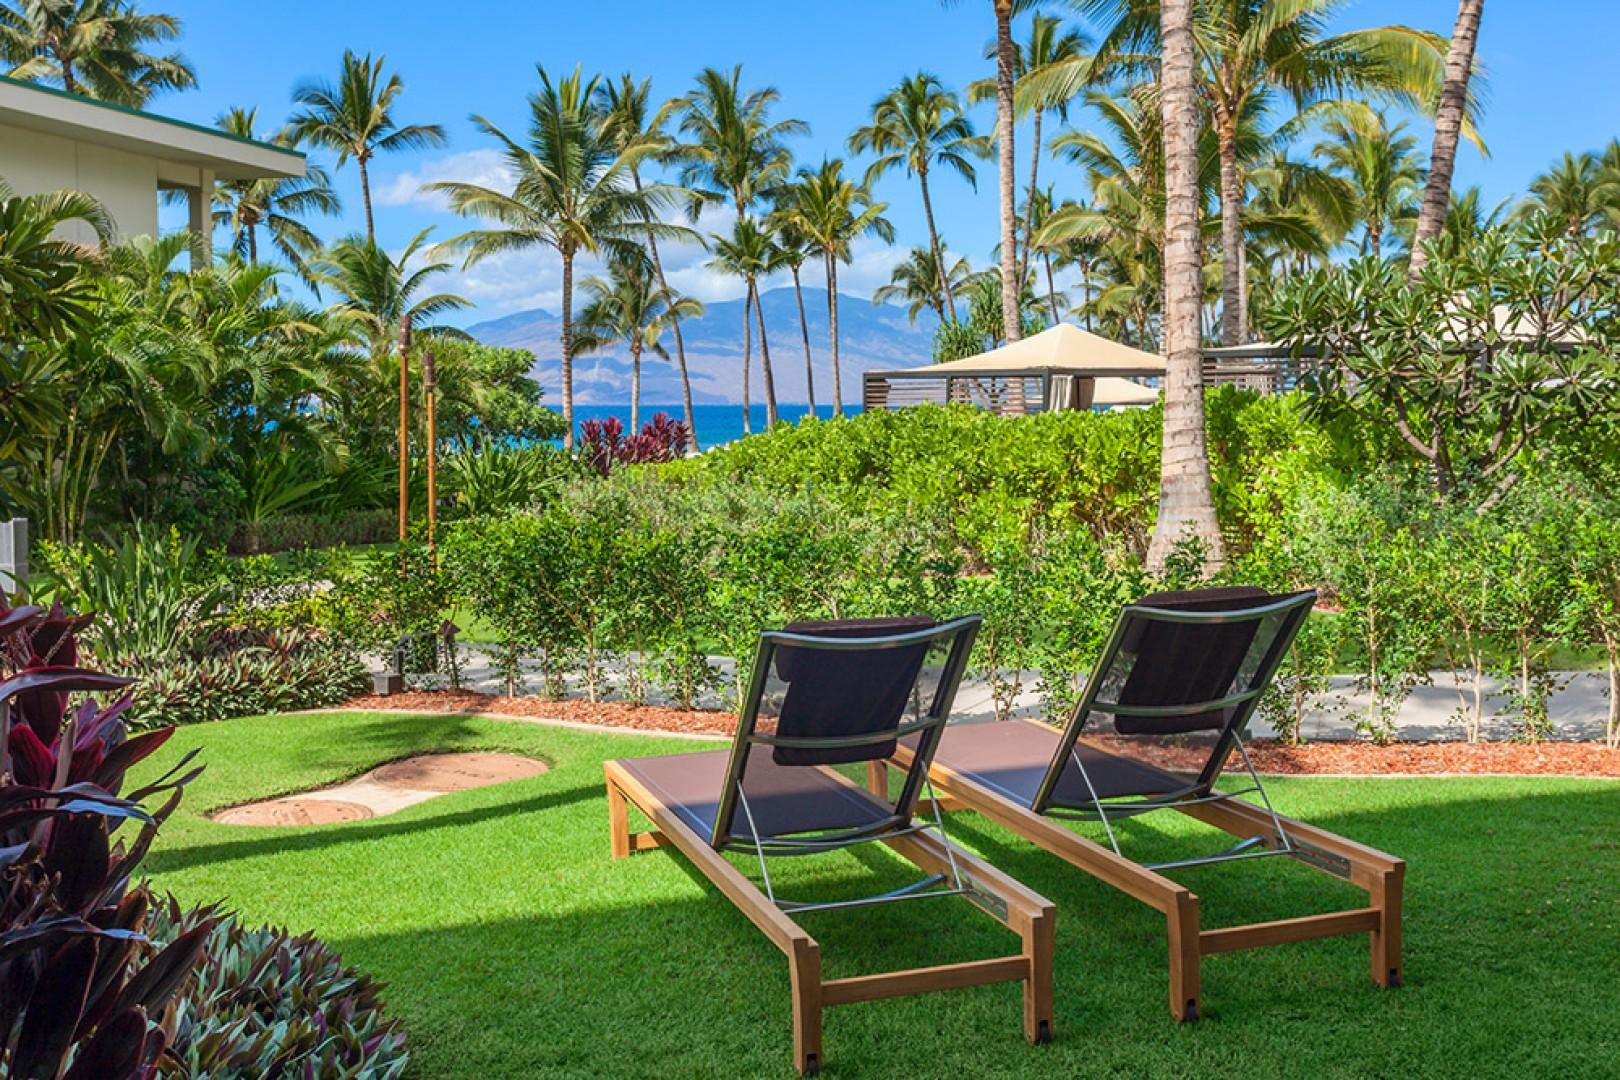 SeaGlass Villa 810 at Andaz Maui Wailea Resort - Your Own Private Paradise - A Covered Outdoor Patio with Lounge Seating, A Hot Soak Tub, Dining Area, BBQ, Garden and Lawn, Hammock and 4 Reclining Chaise Lounge Chairs